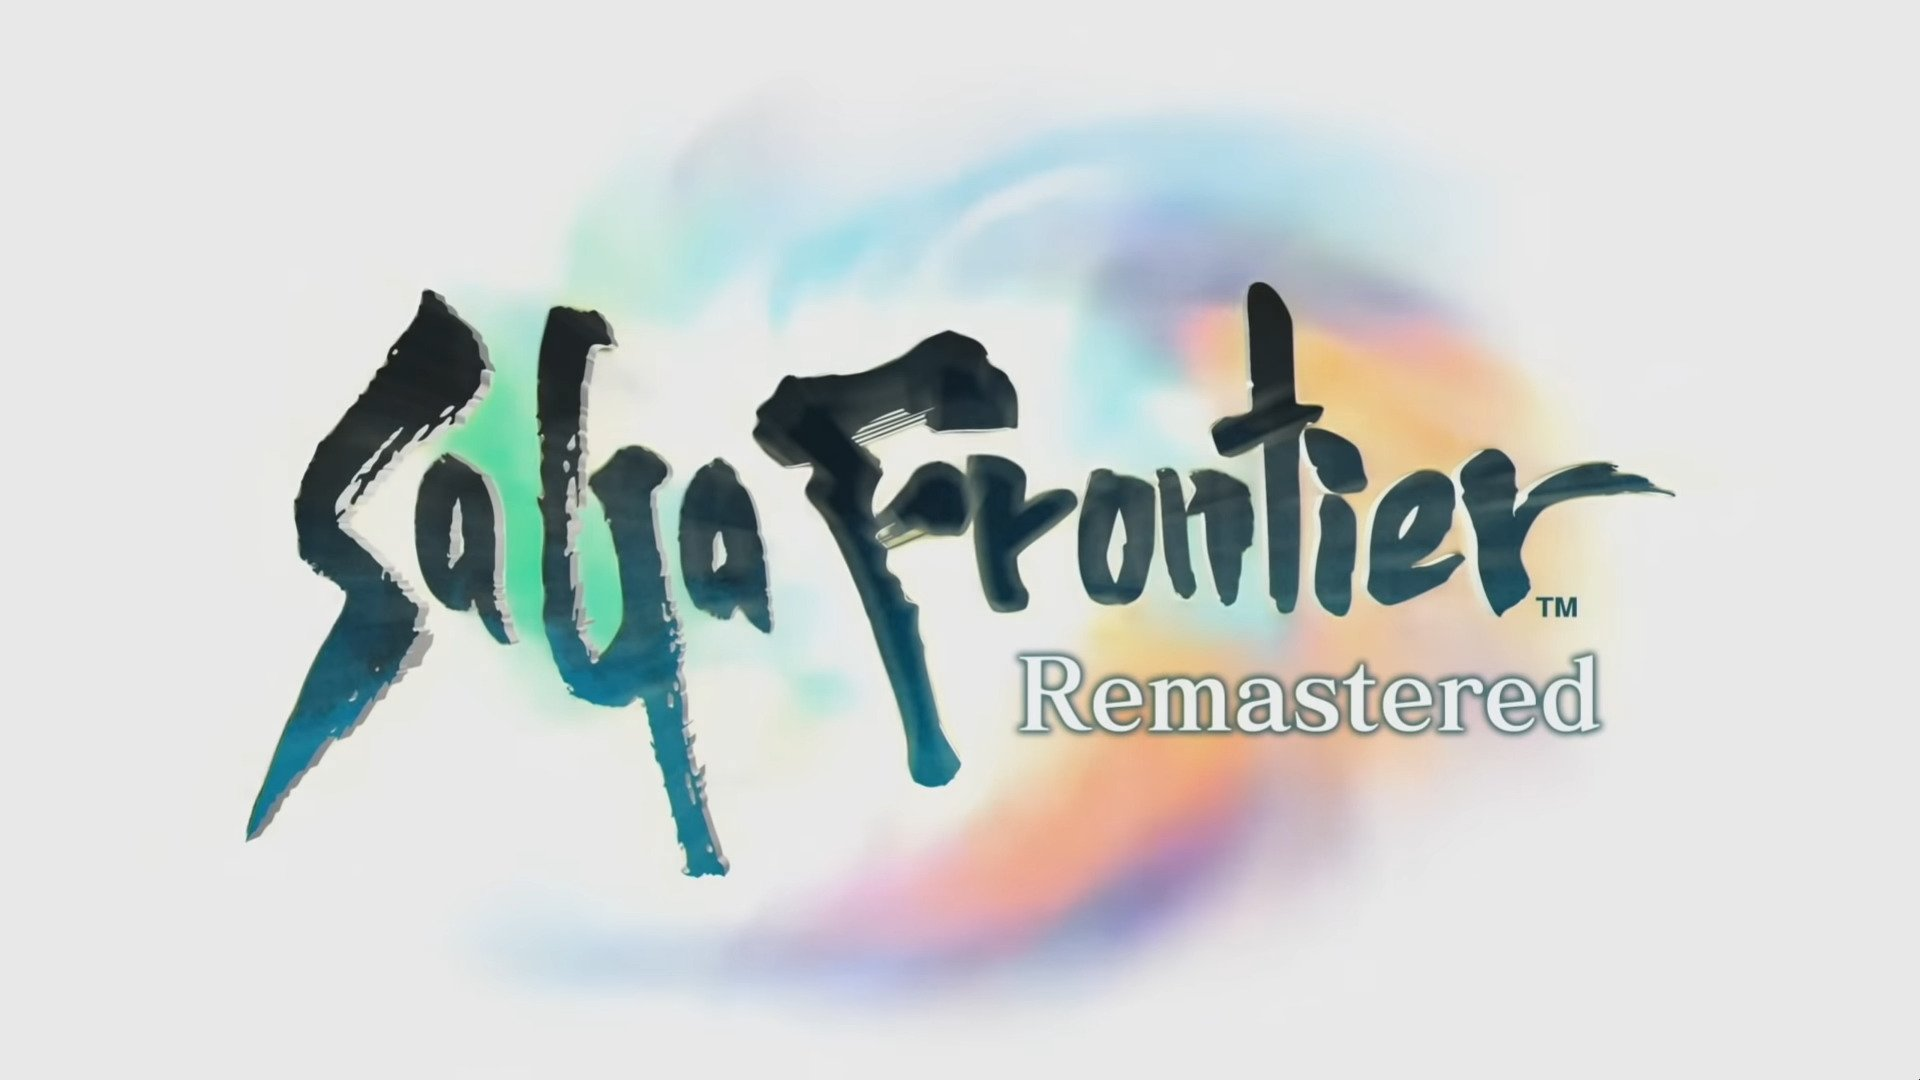 Square Enix Announces SaGa Frontier Being Remastered Launching In Summer Of 2021